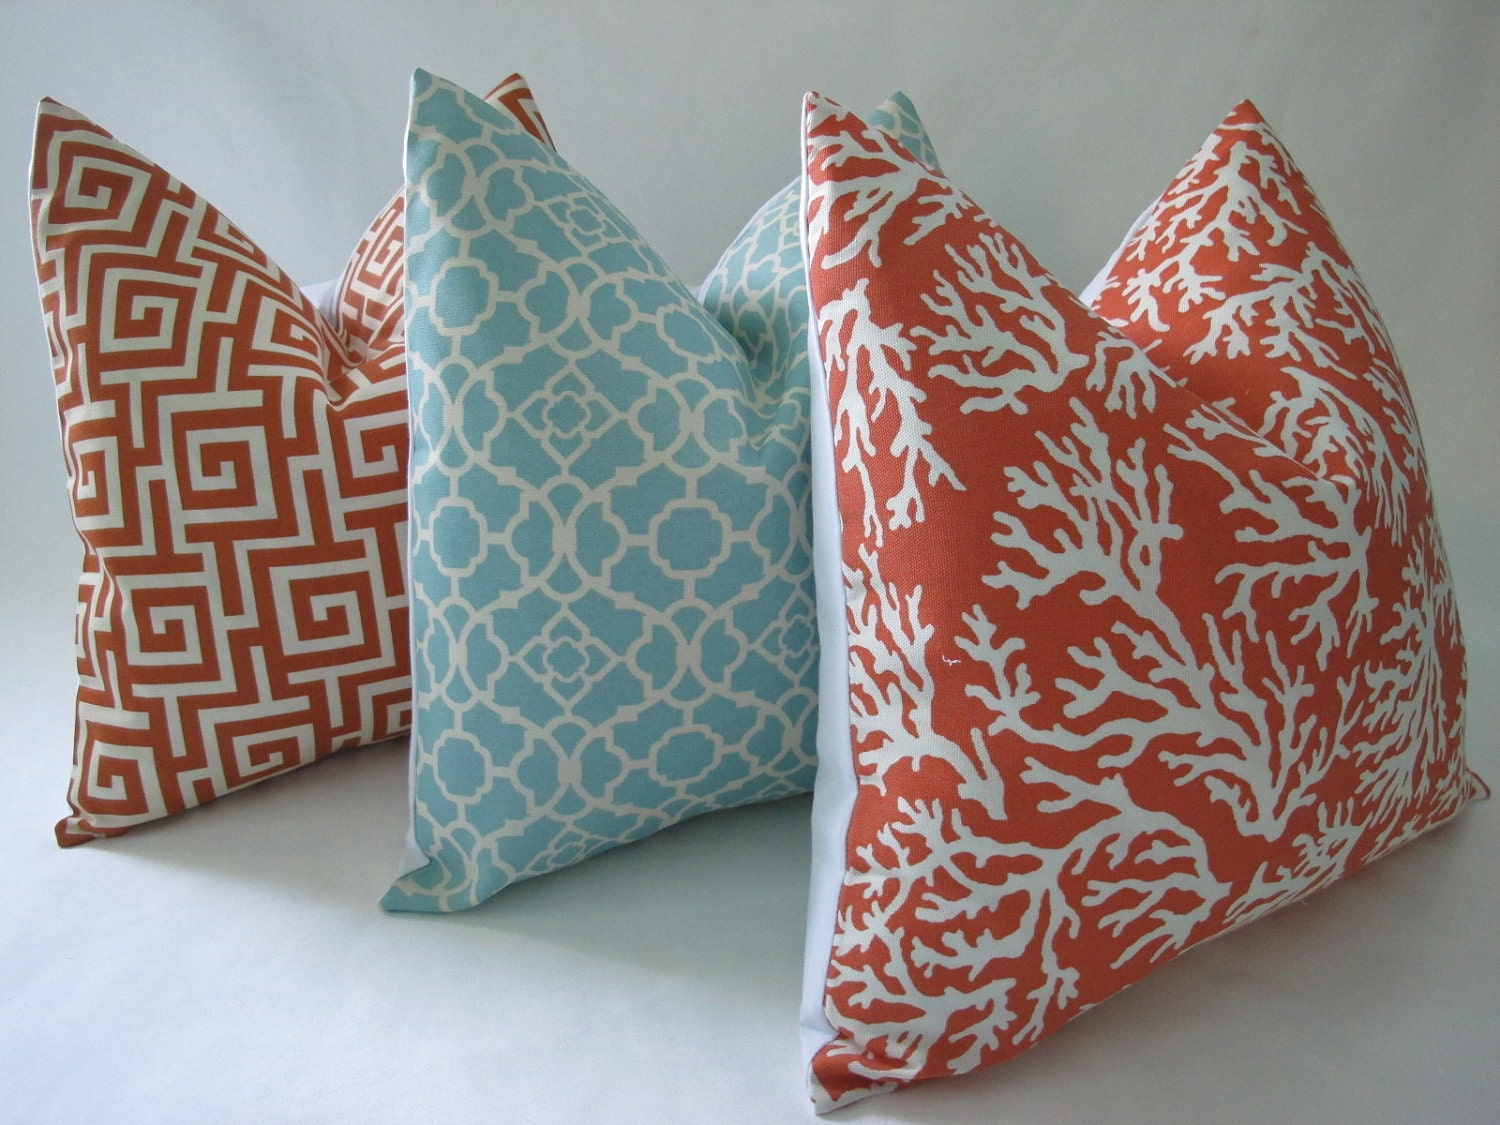 Free US Shipping-Decorative Designer Pillow Cover-Coral Reef In Mandarin